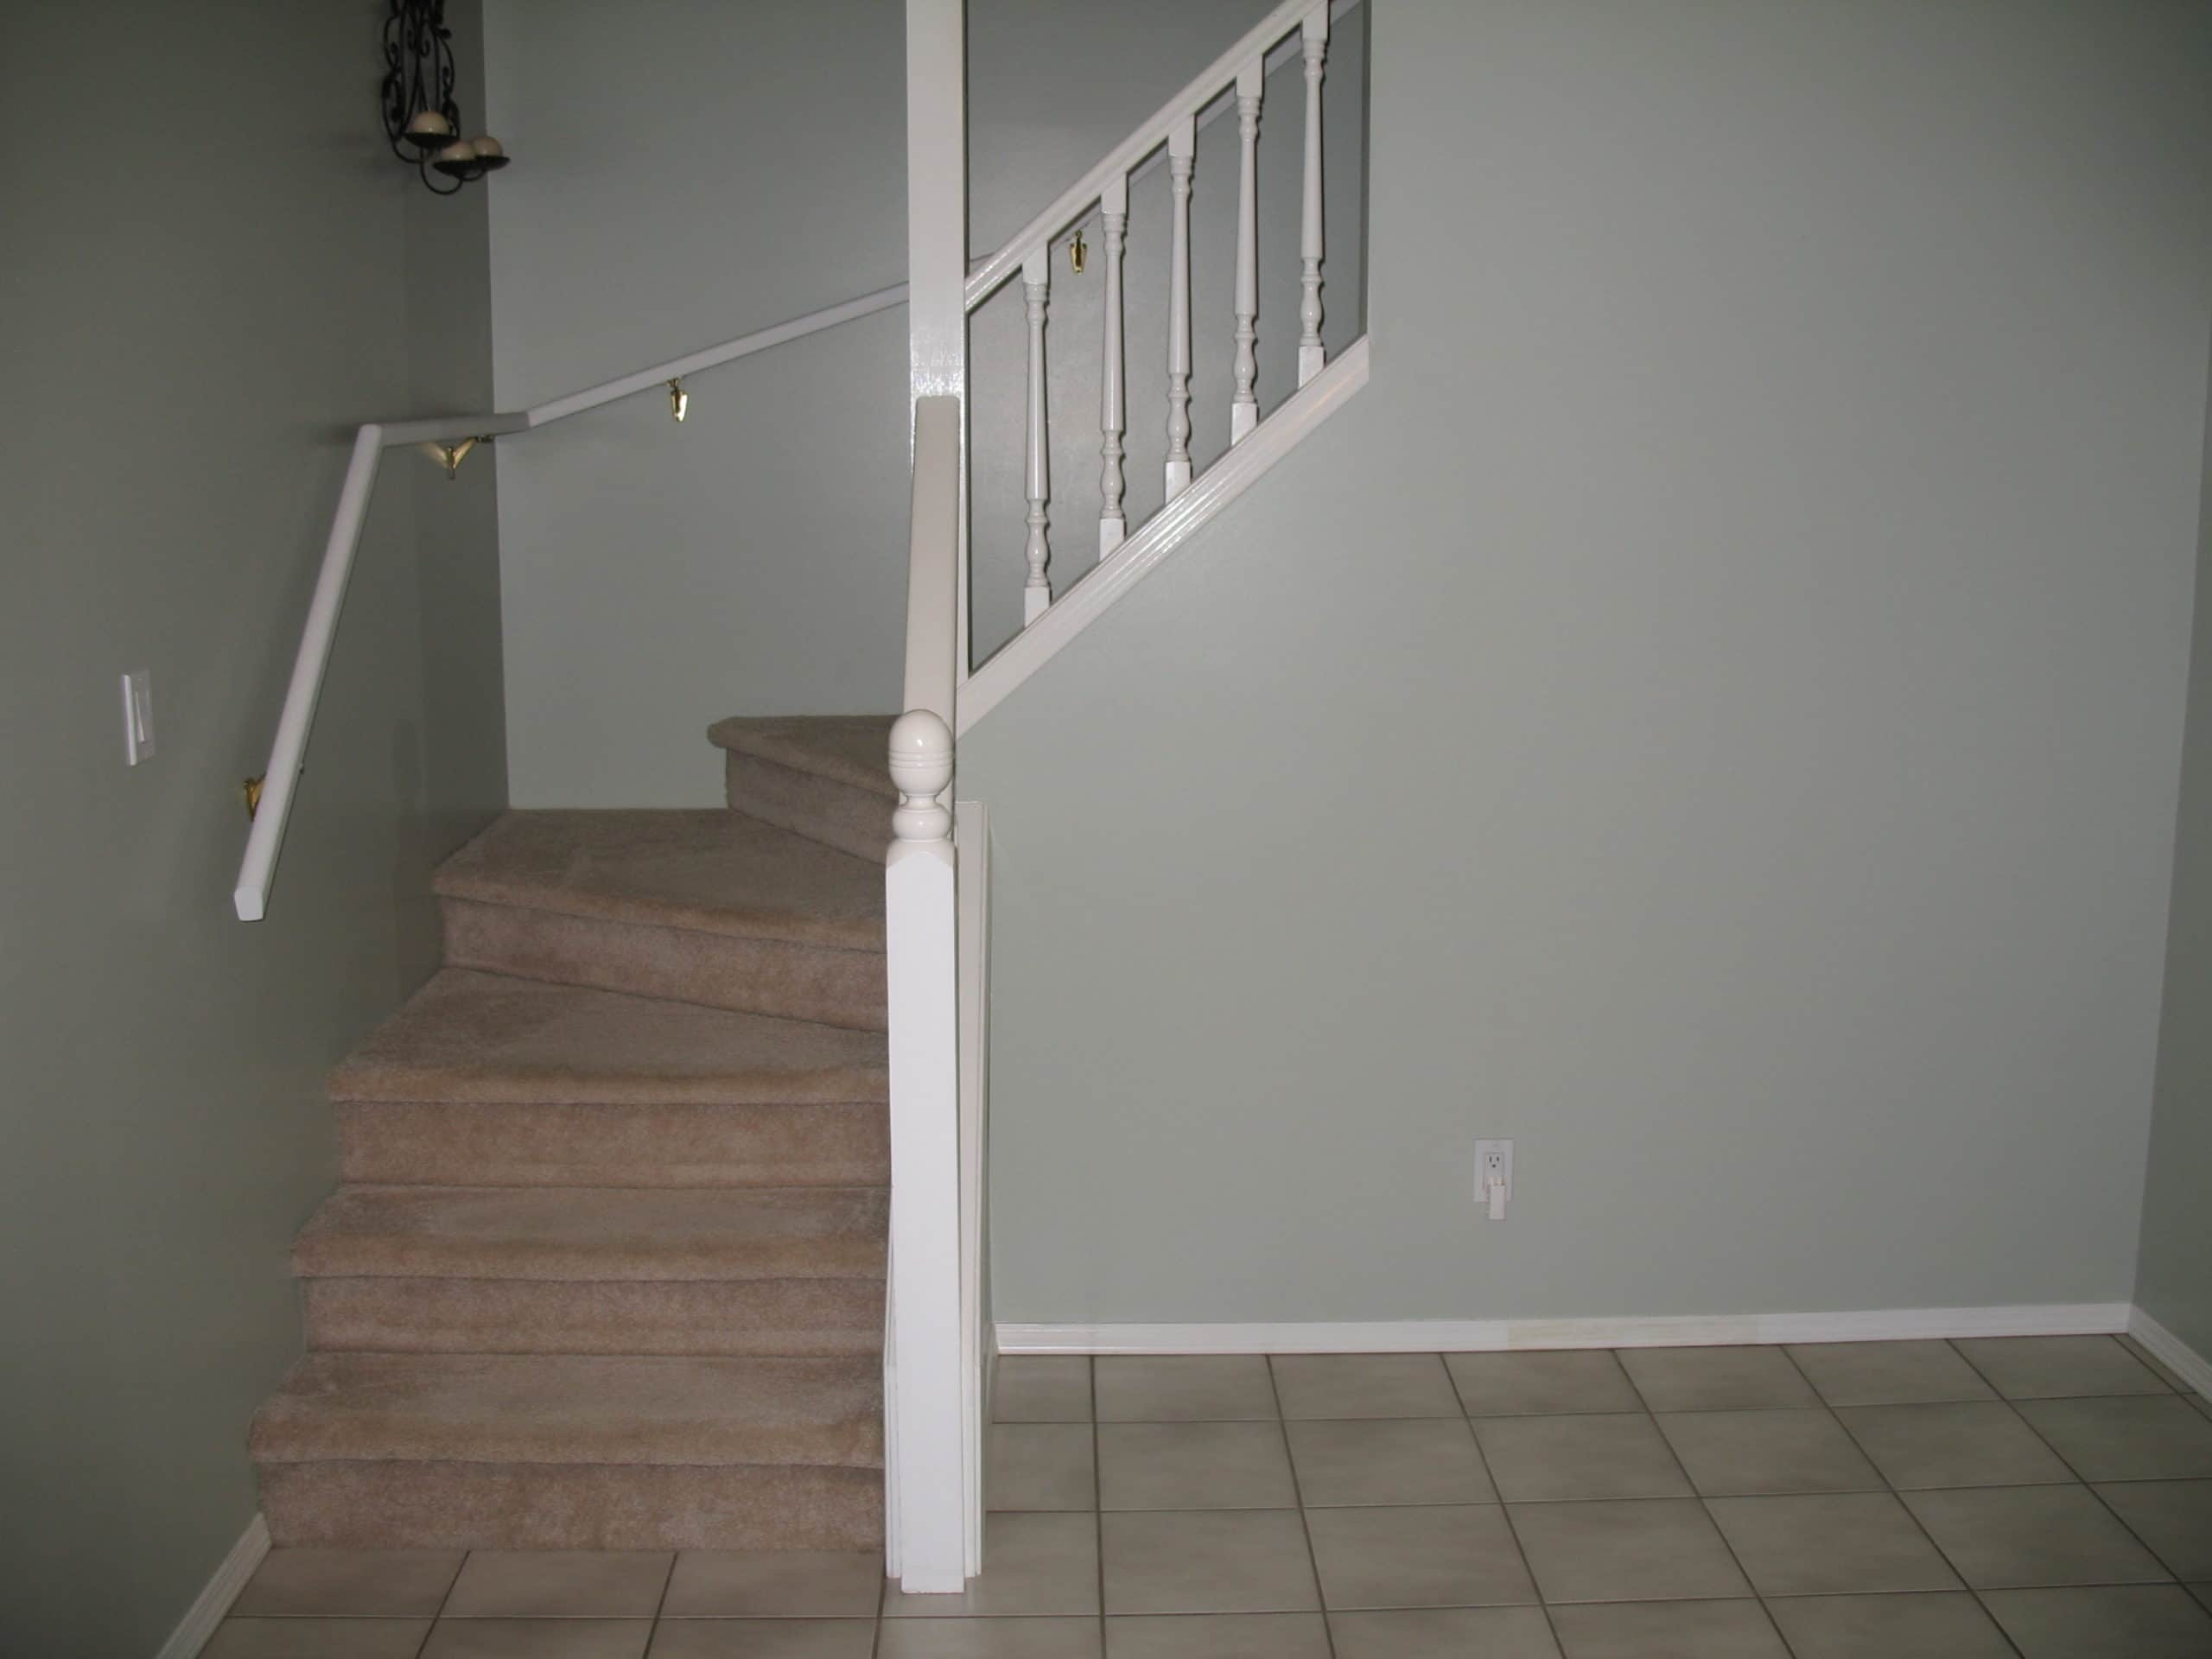 1990S Home With Carpet And Tile With Pink Undertone   Carpet And Tile Stairs   Gray   Backsplash   Carpeted   Tiled Hallway Carpet   Before And After